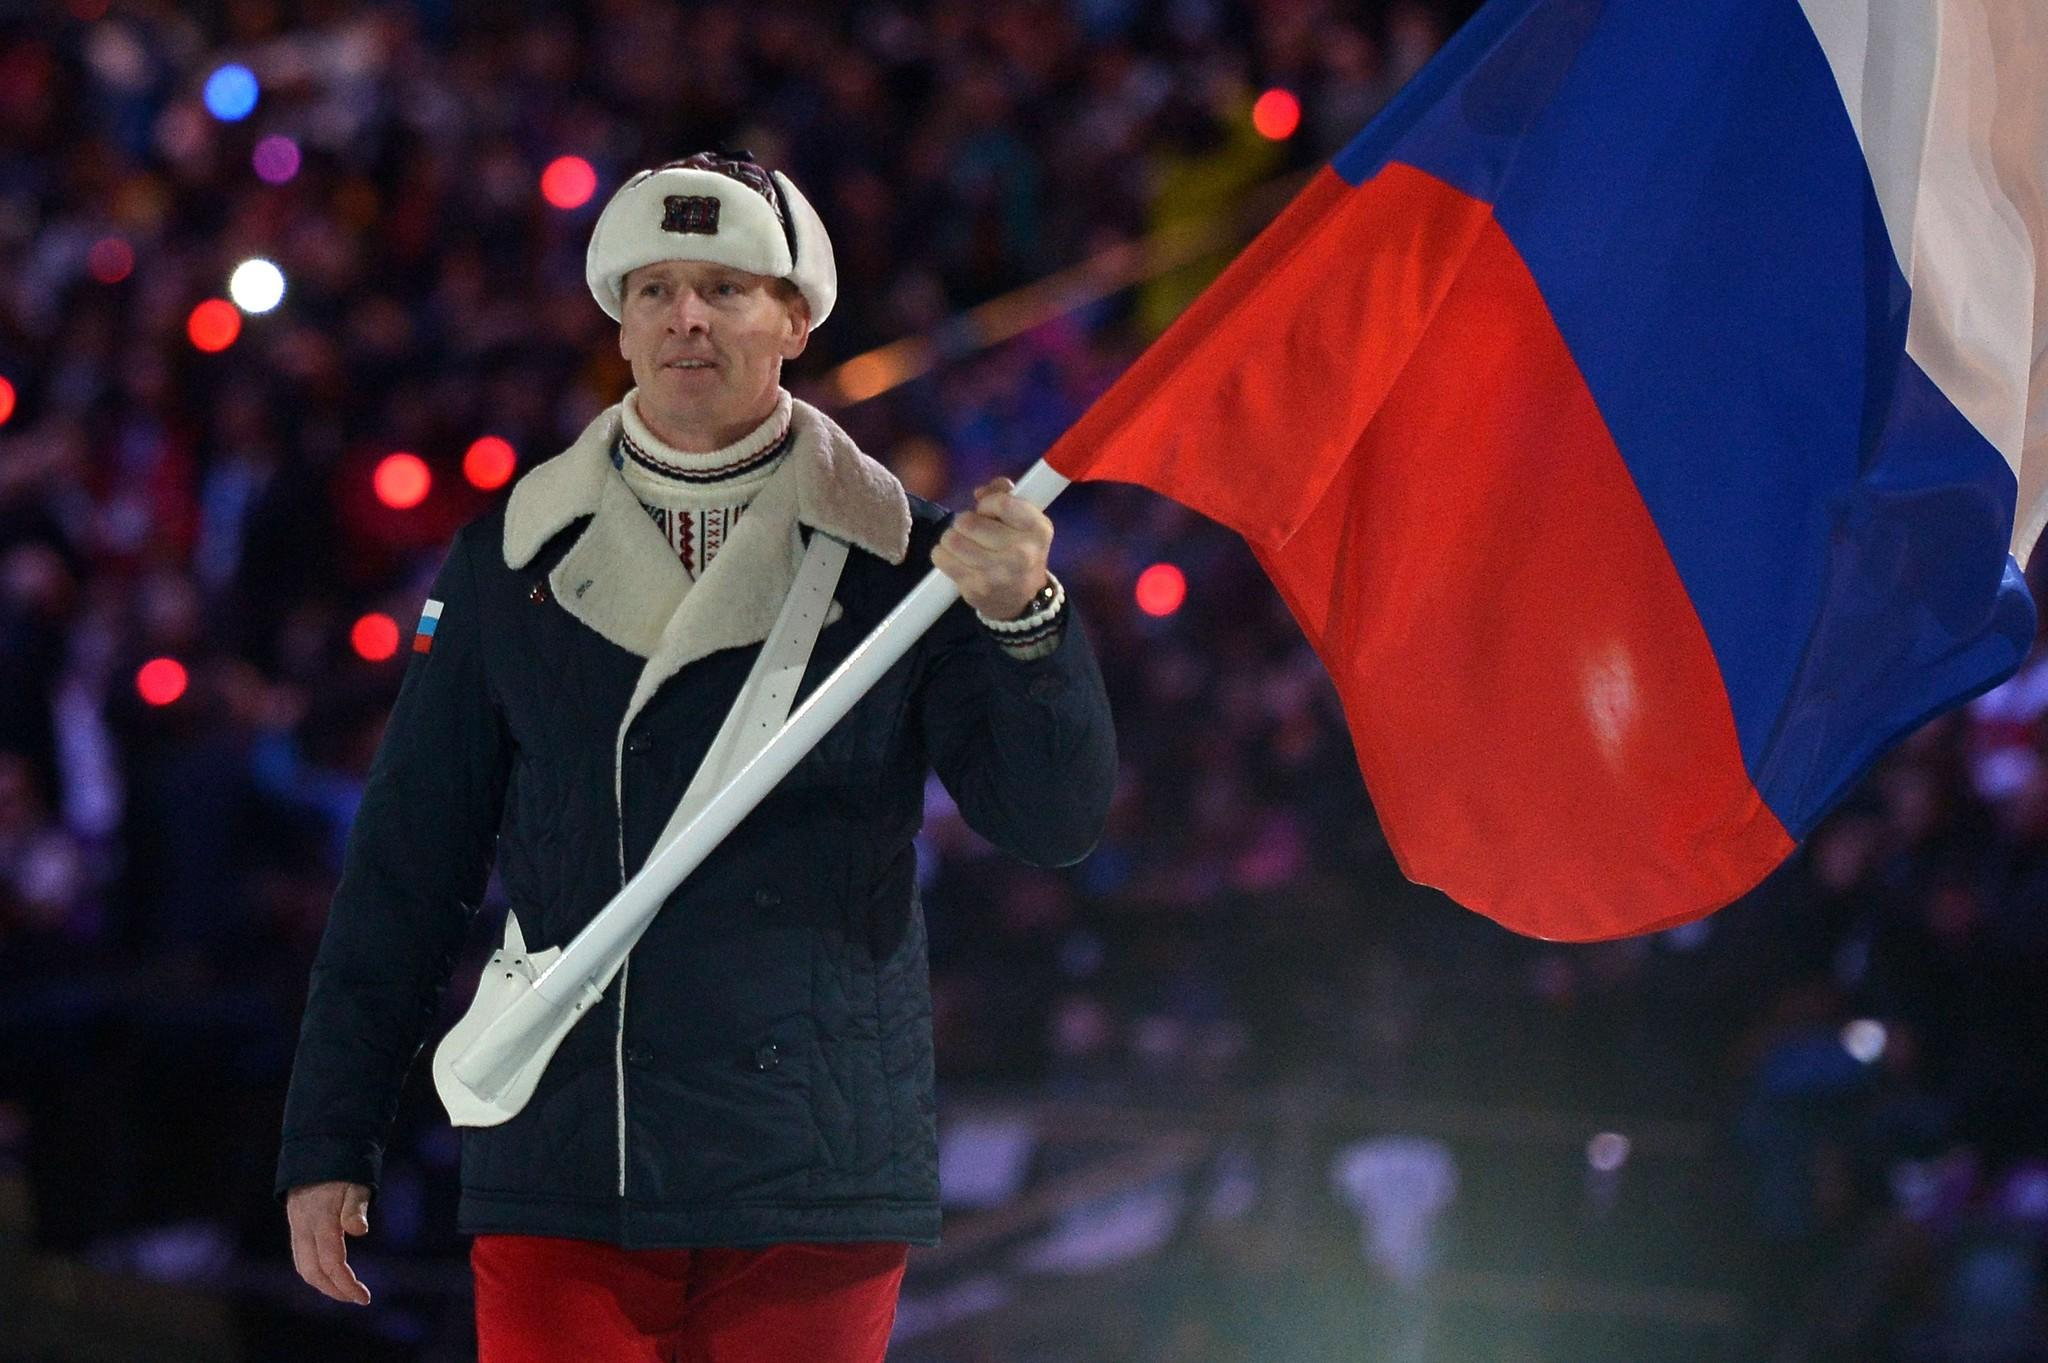 Russia's flag bearer, bobsledder Alexander Zubkov leads his national delegation during the Opening Ceremony of the Sochi Winter Olympics at the Fisht Olympic Stadium on February 7, 2014 in Sochi.